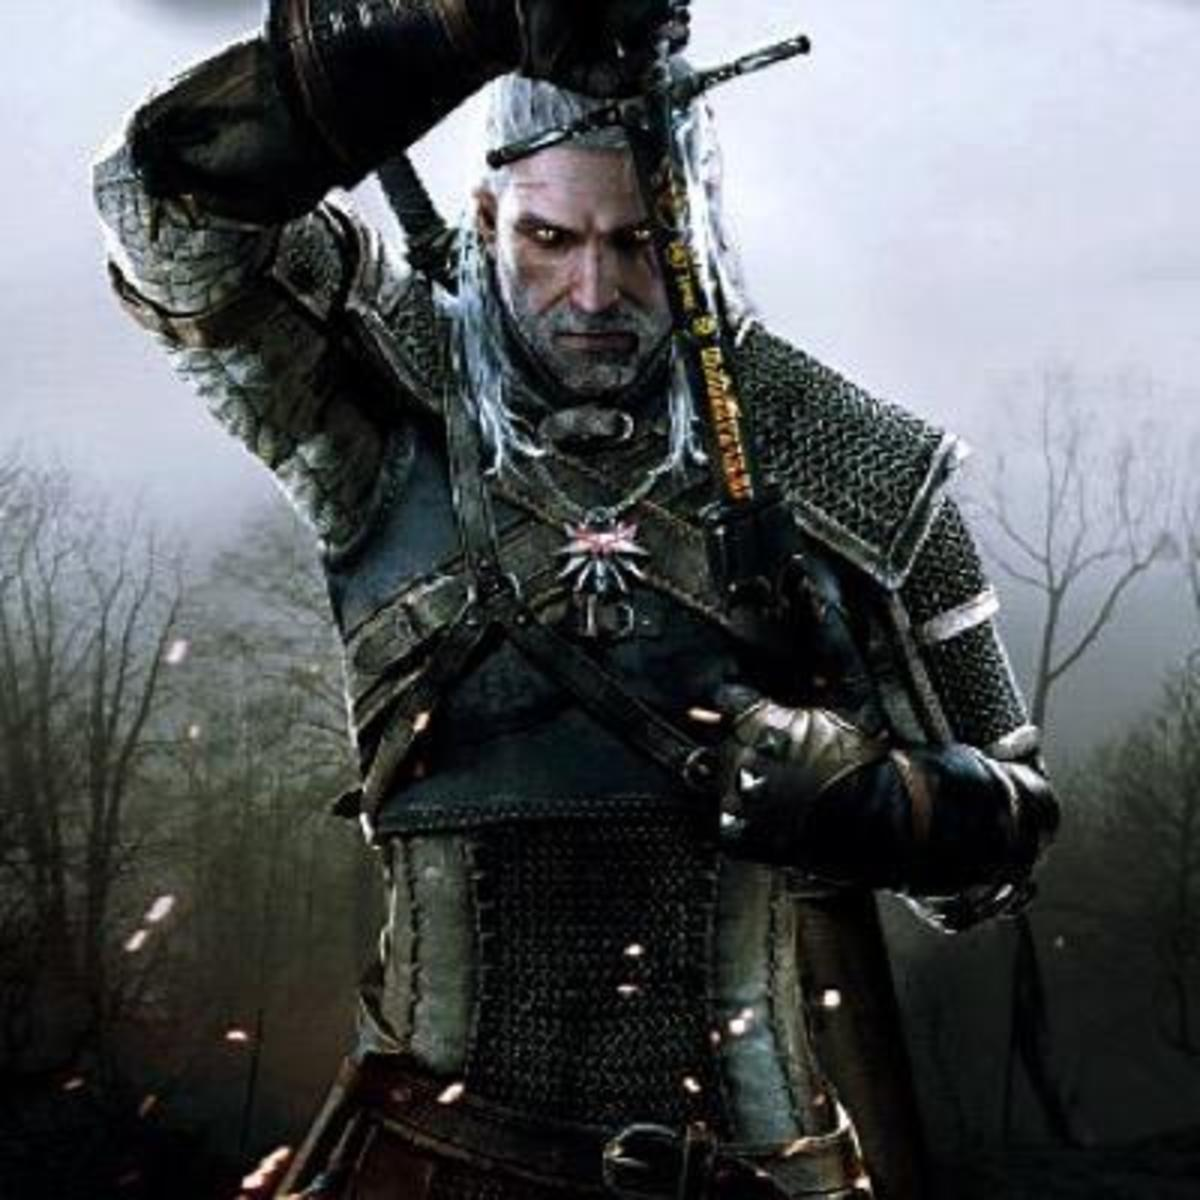 Geralt of Rivia, the Witcher from Sapkowski's novels and short stories.